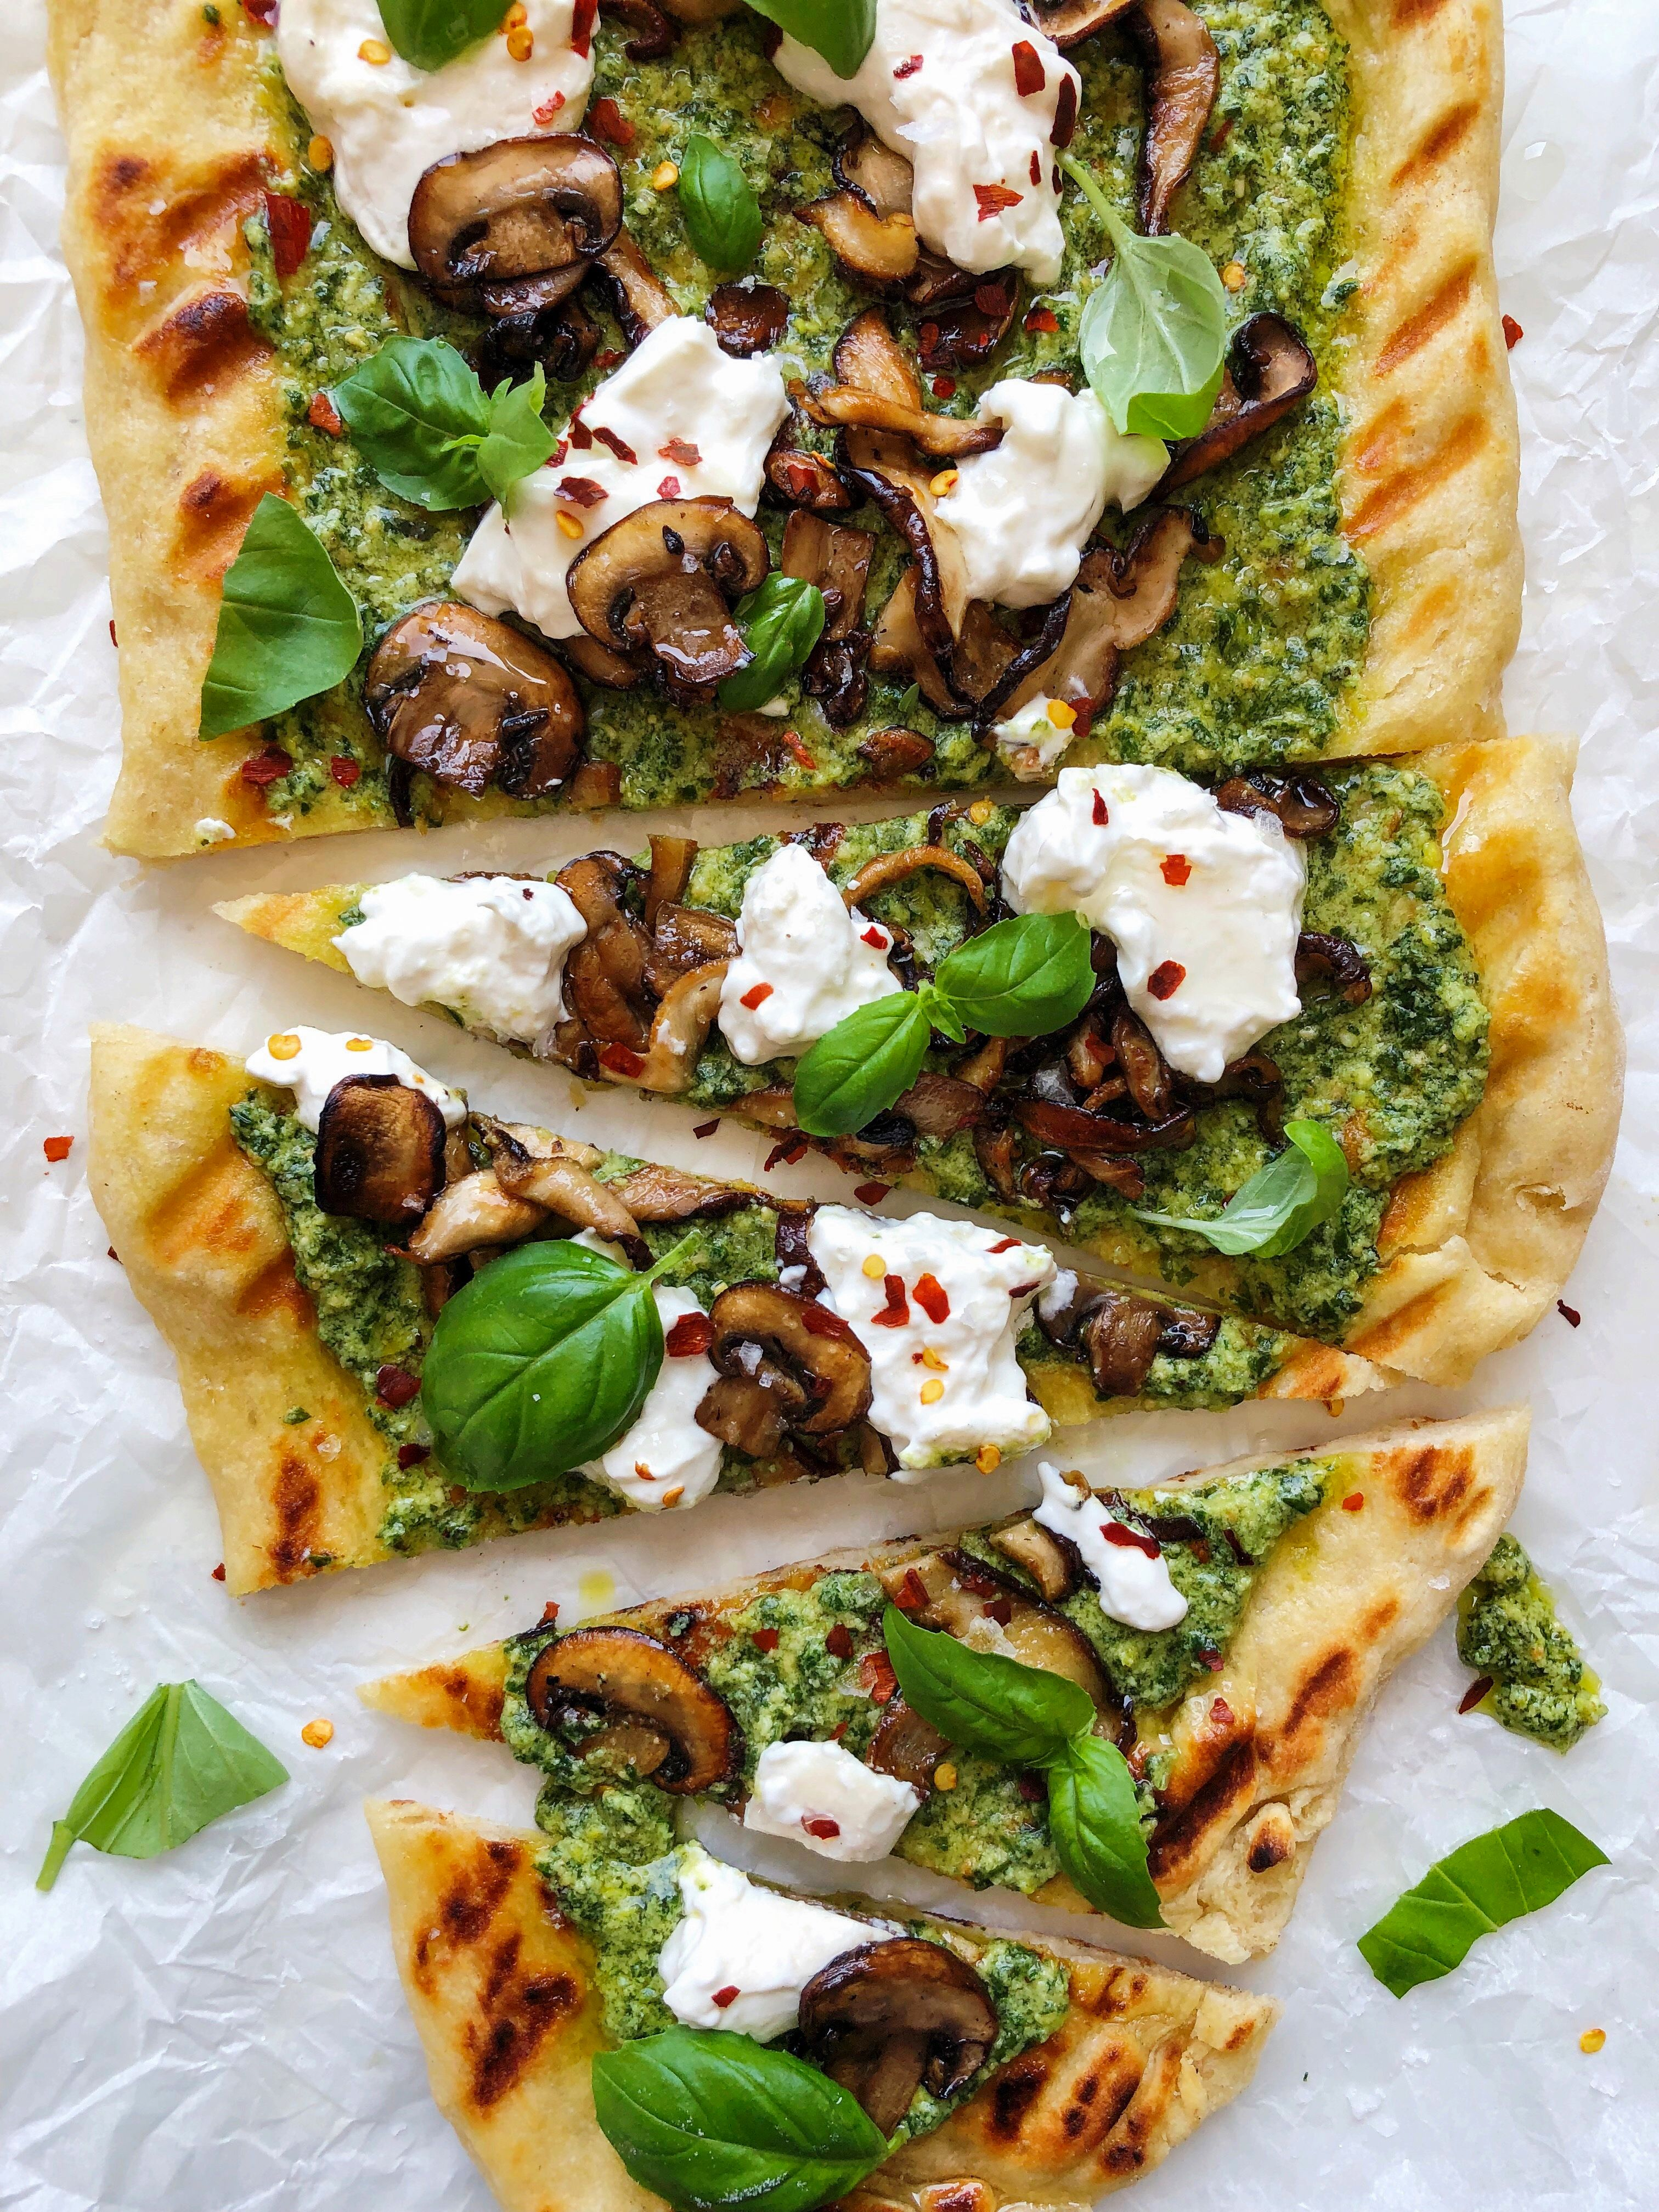 Grilled Pizza with Pesto, Mushrooms and Garlic Oil